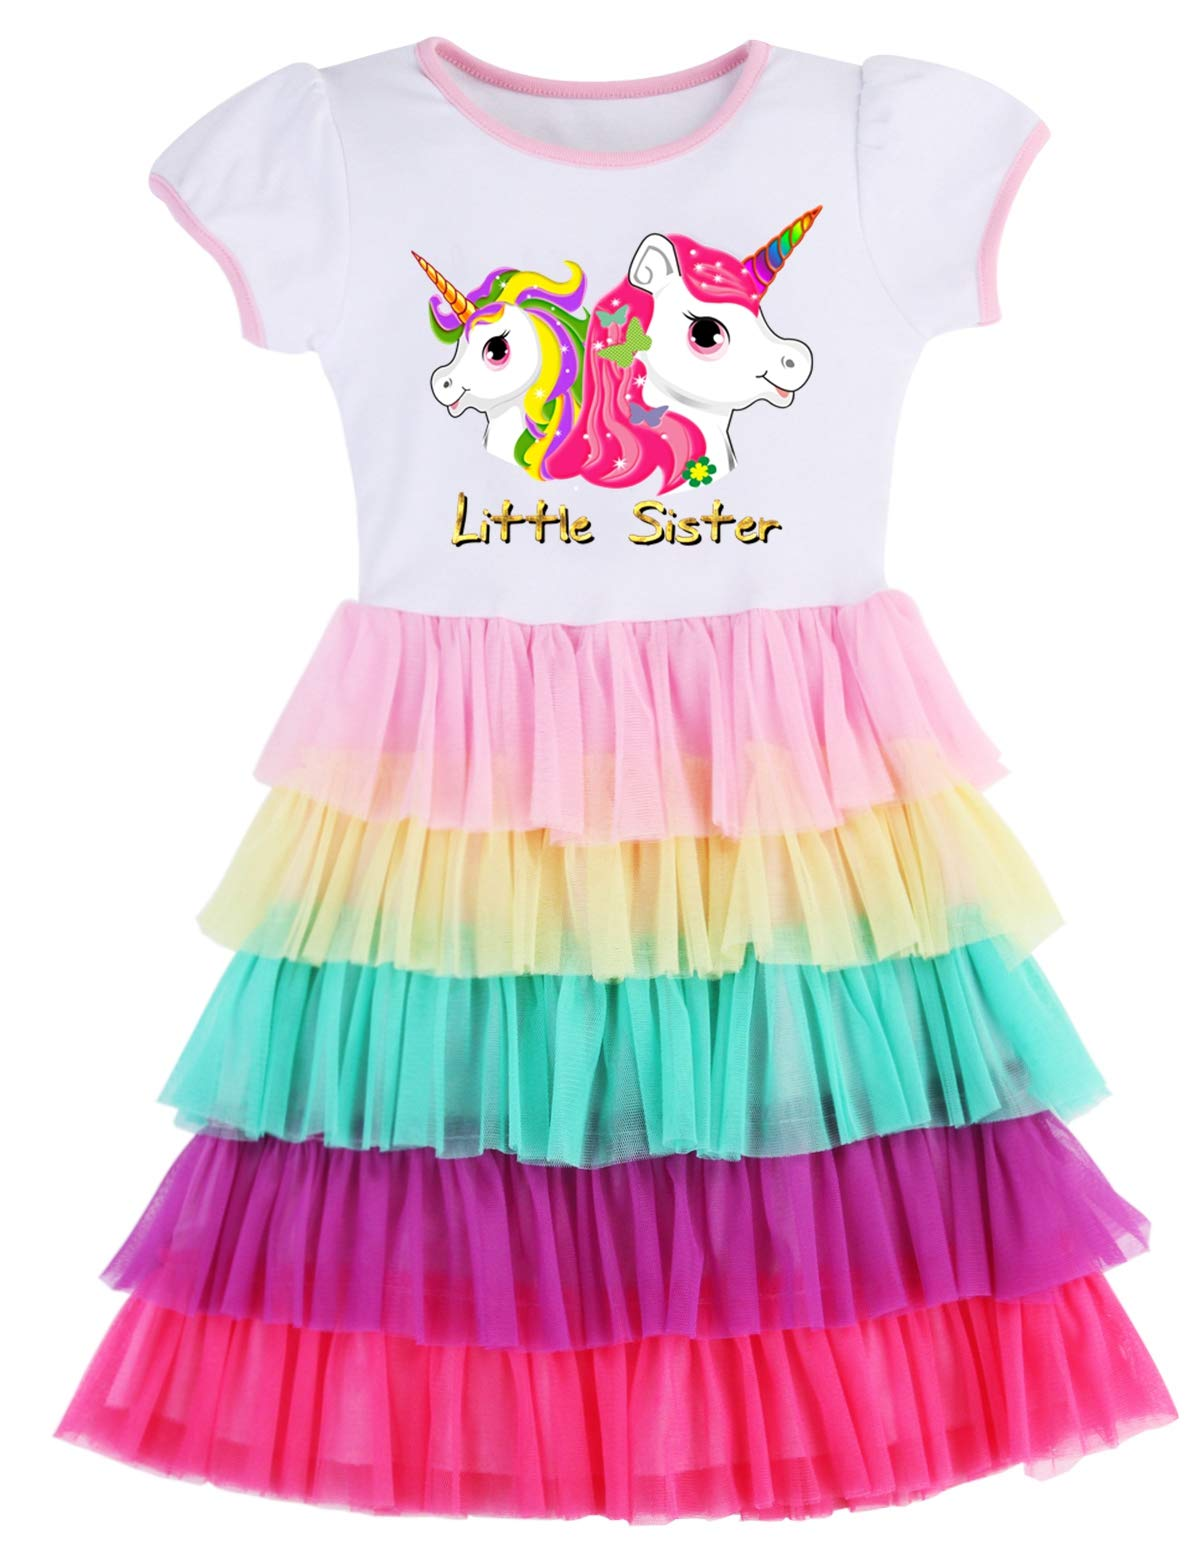 PrinceSasa Elegant Girls Clothes Unicorn Rainbow Party White Cupcake Short Sleeve Little Sister Spring Dress for Princess Toddler Birthday Outfits Dresses,5T04B,2-3 Years(Size 100)